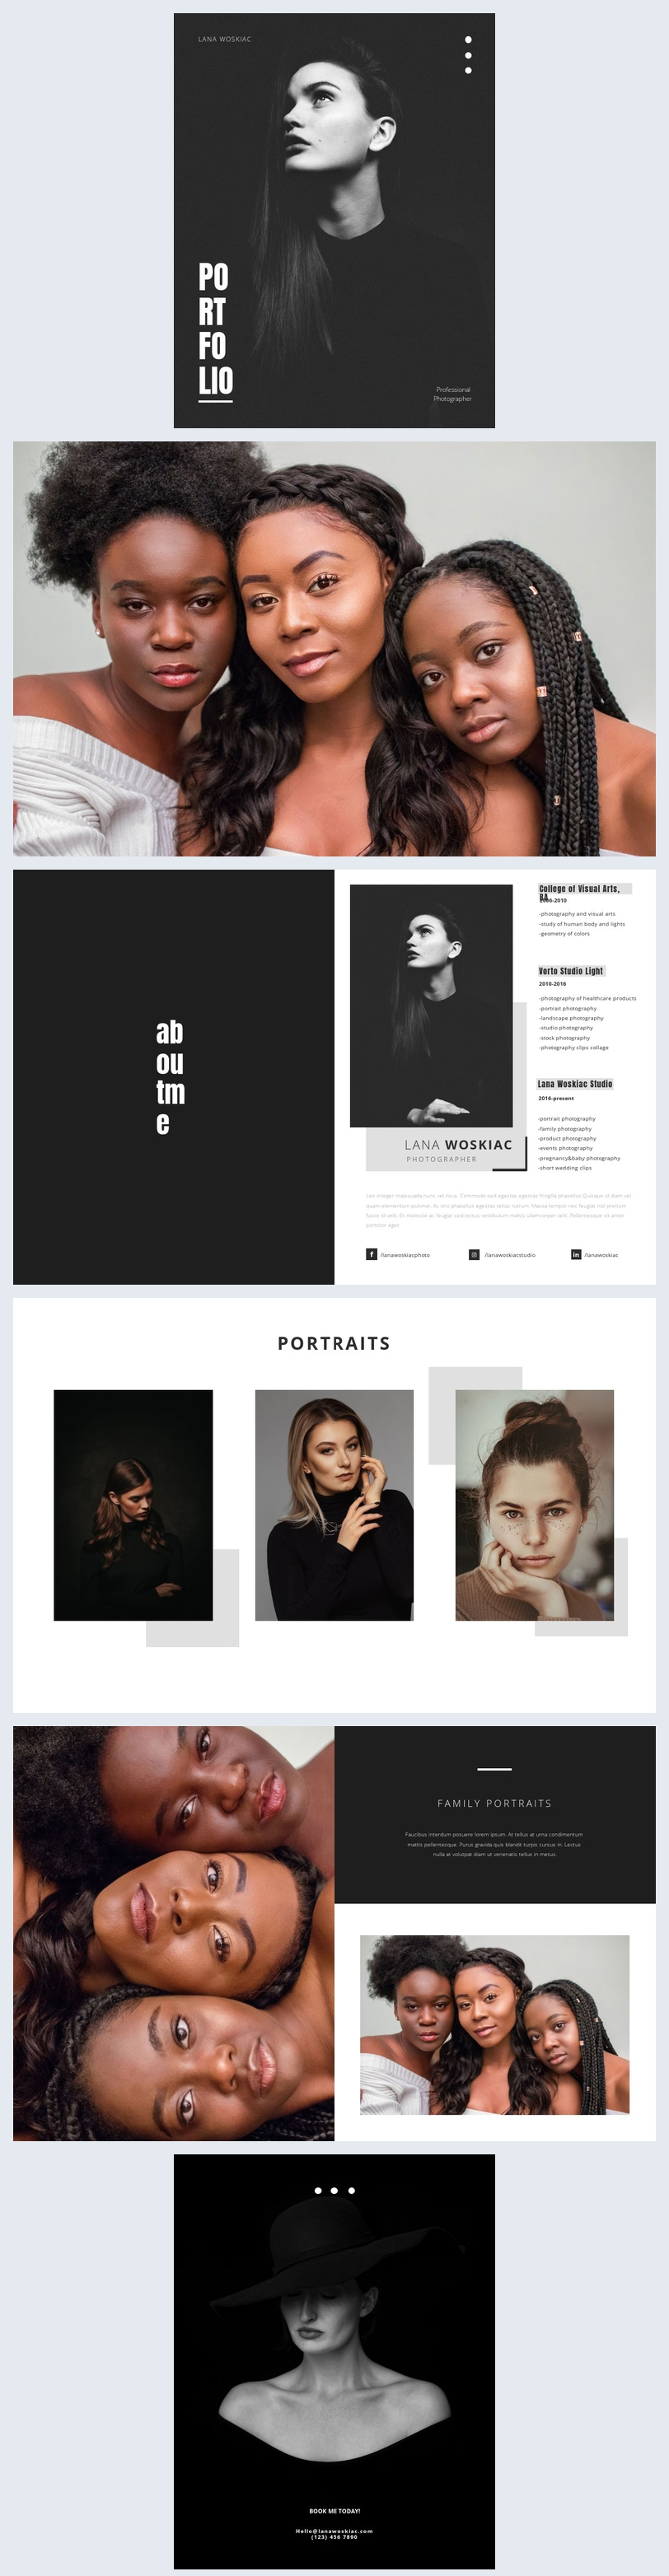 Digital Photography Portfolio Template